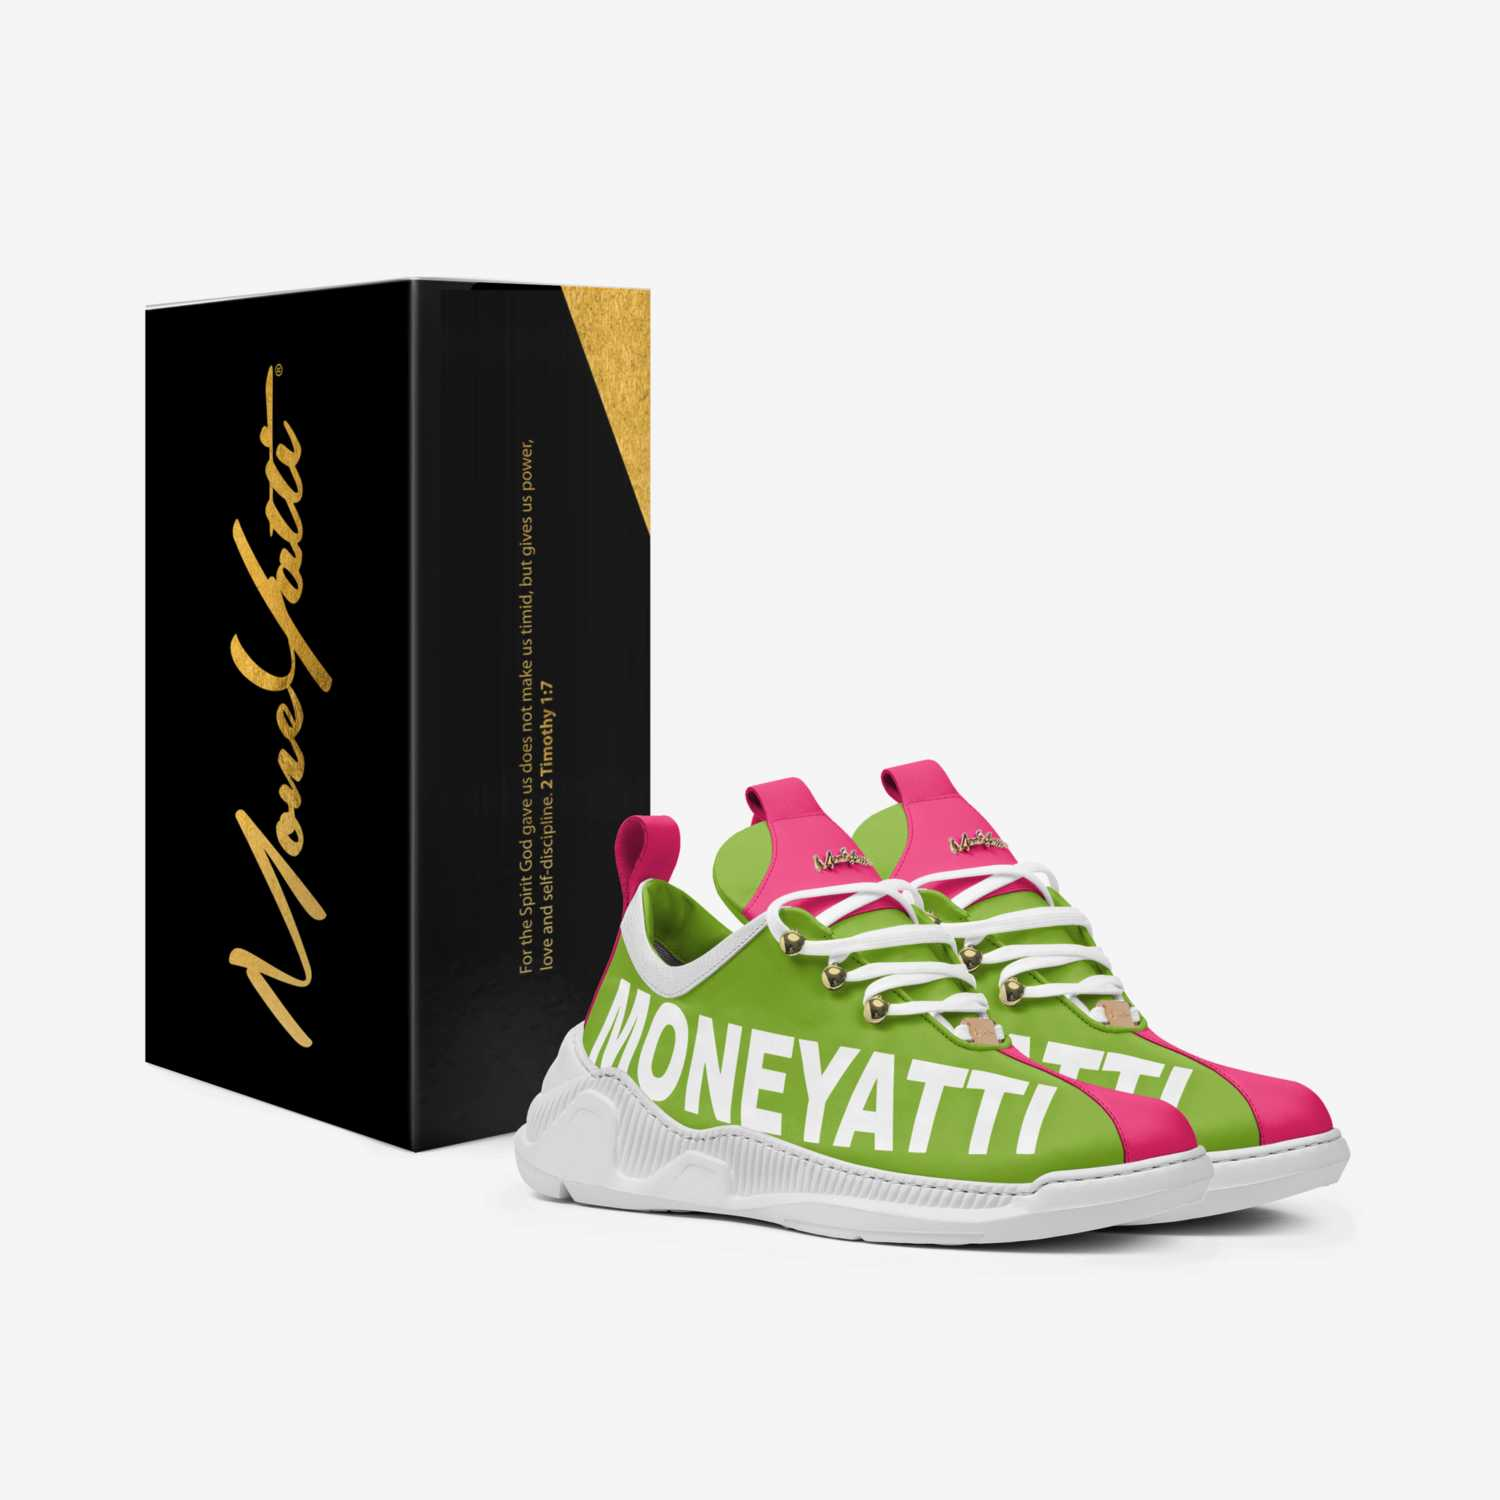 sig07 custom made in Italy shoes by Moneyatti Brand | Box view